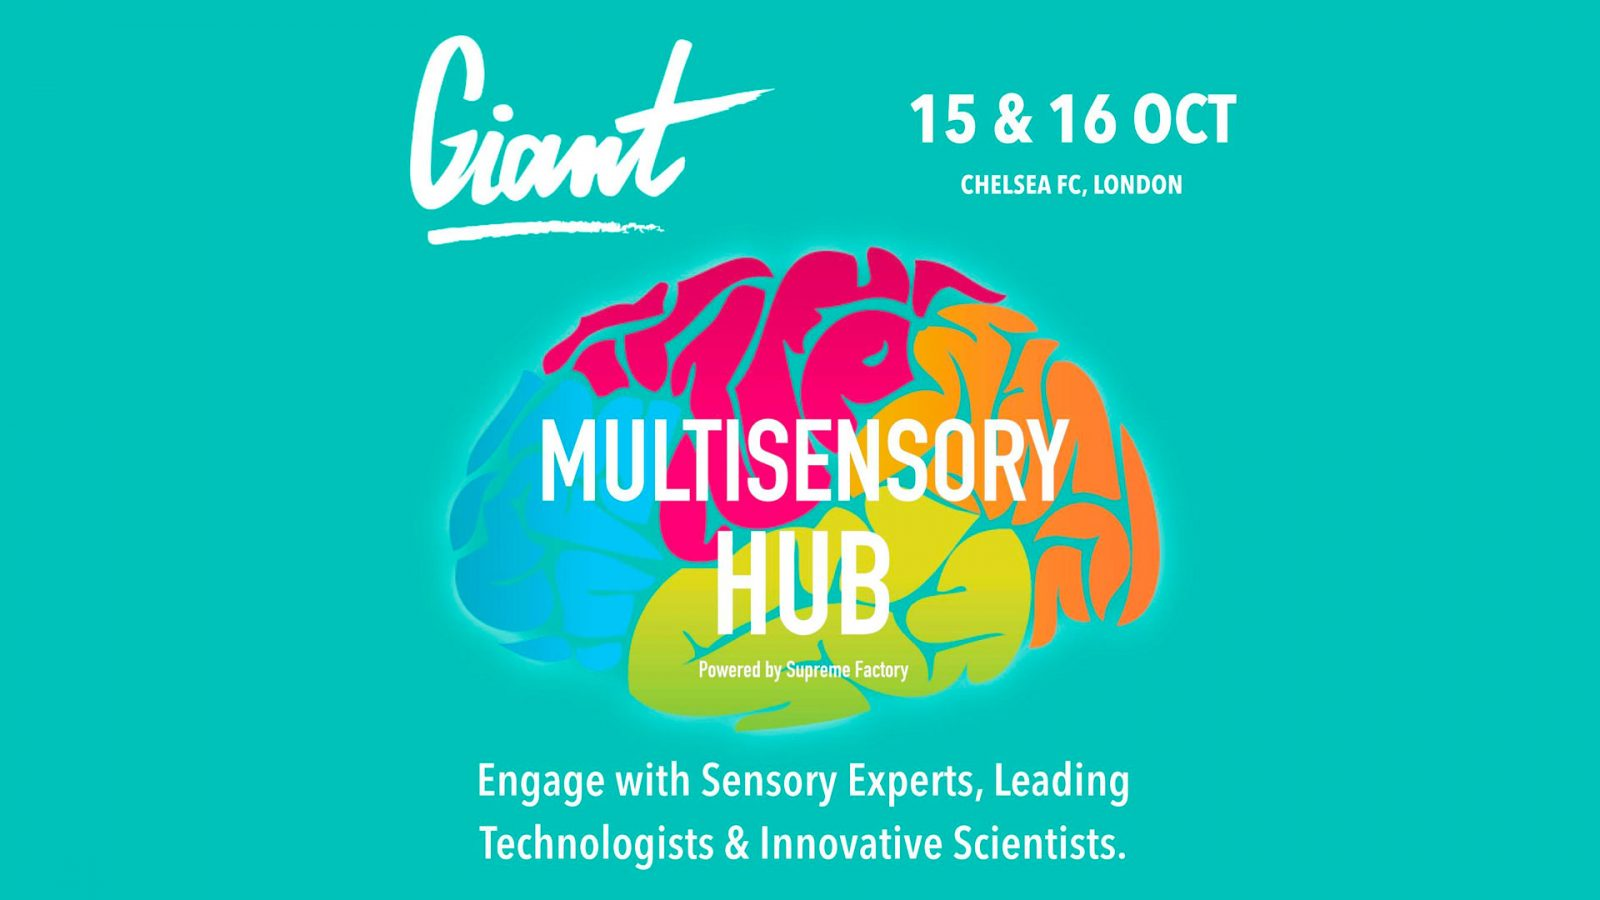 Giant Multisensory Hub Powered By Supreme Factory